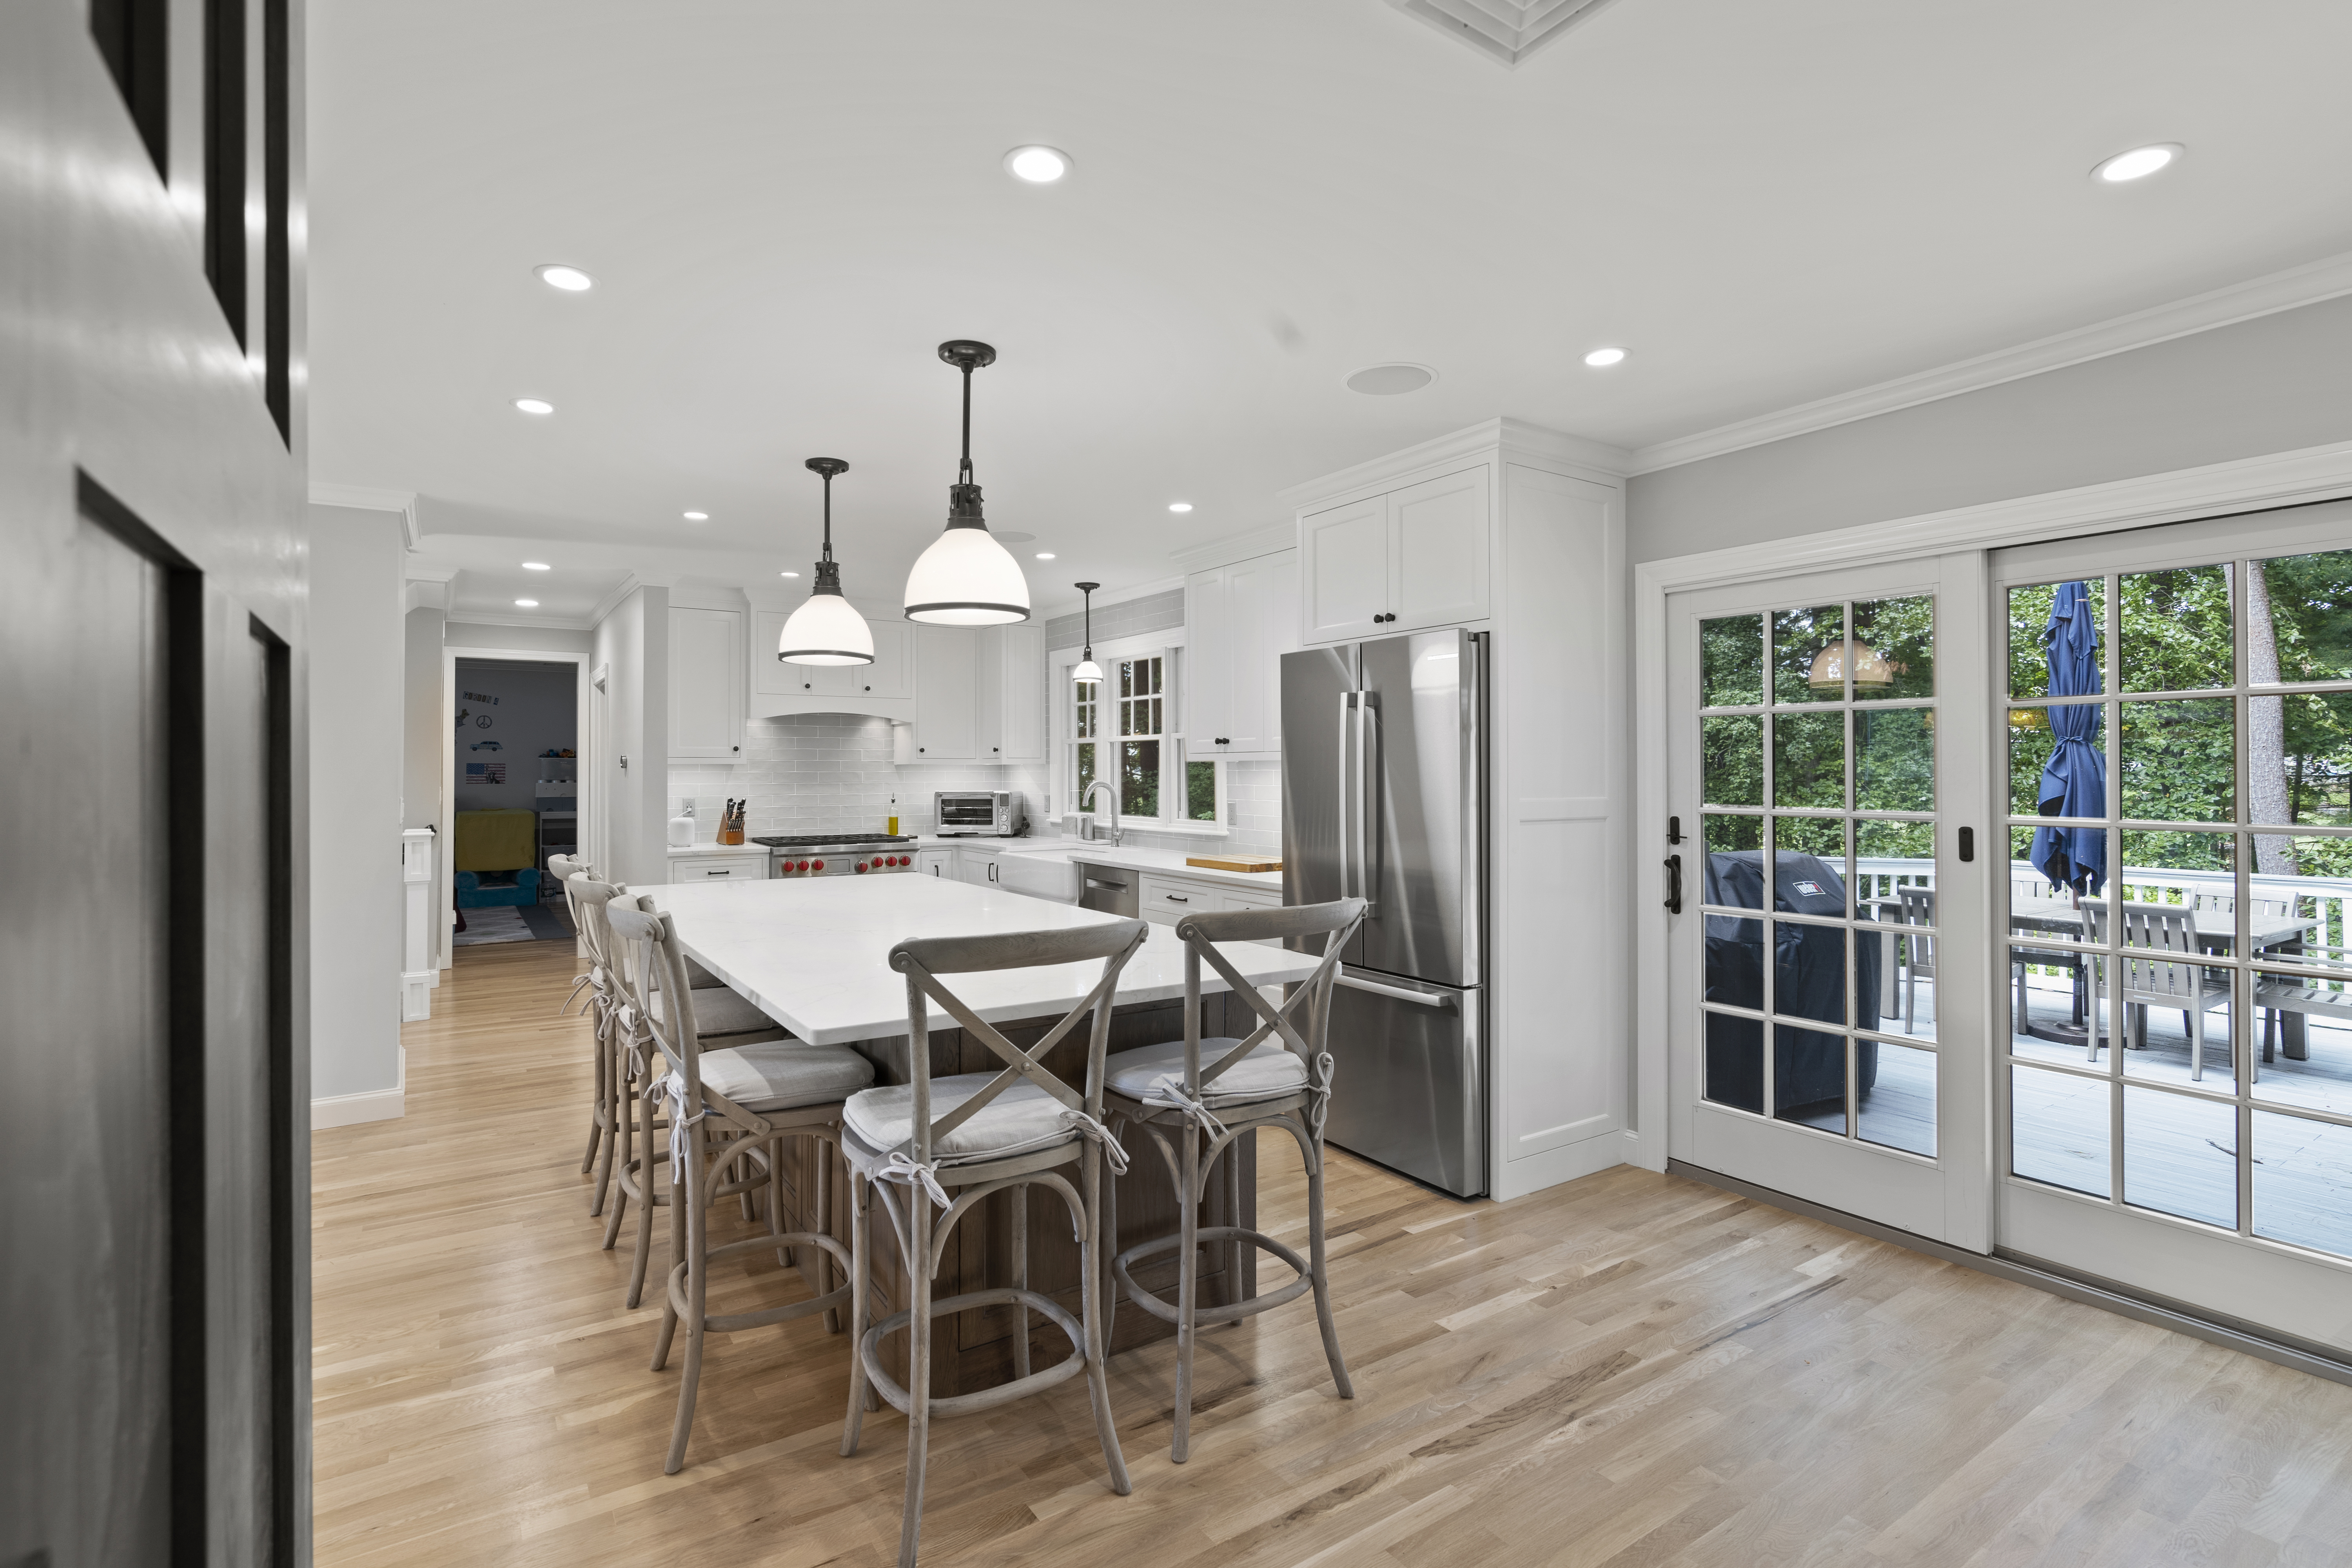 Beautiful custom kitchen and dining area high-end editing real estate photography